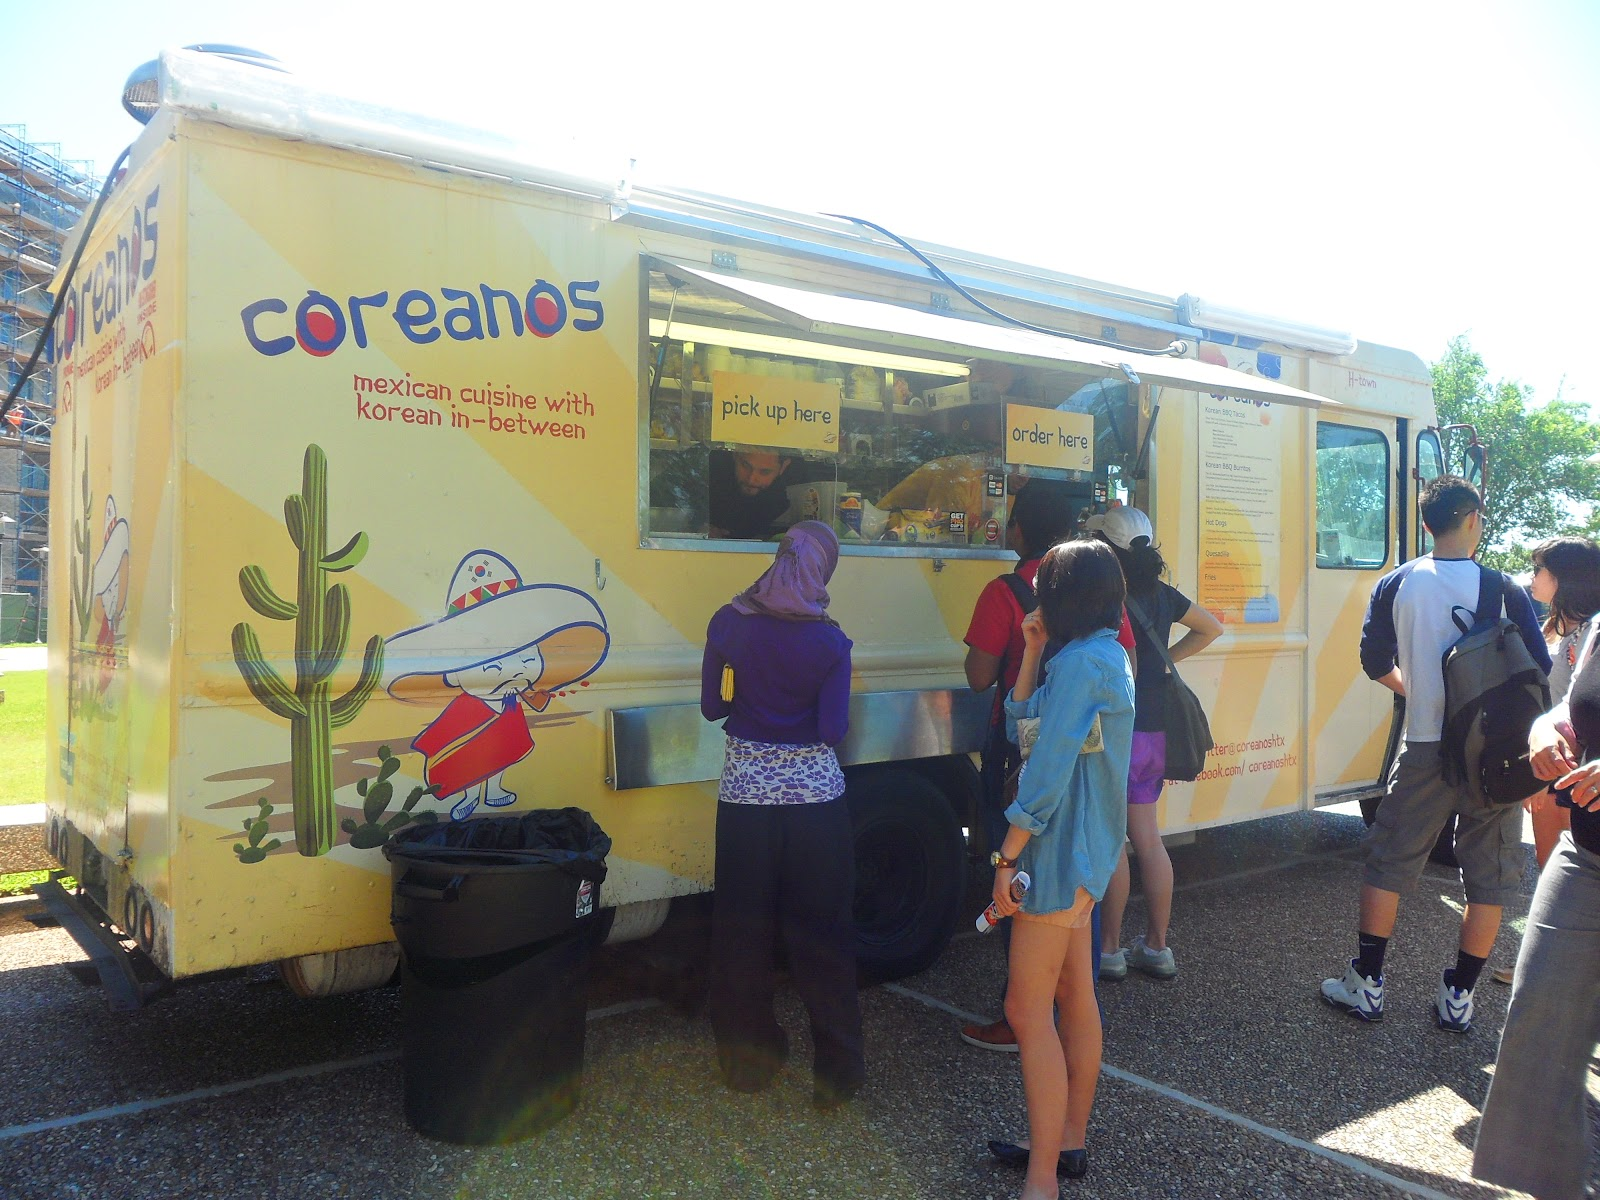 Coreanos food is mexican cuisine with korean in between the menu has dishes such as korean bbq tacos and burritos quesadillas fries and the most